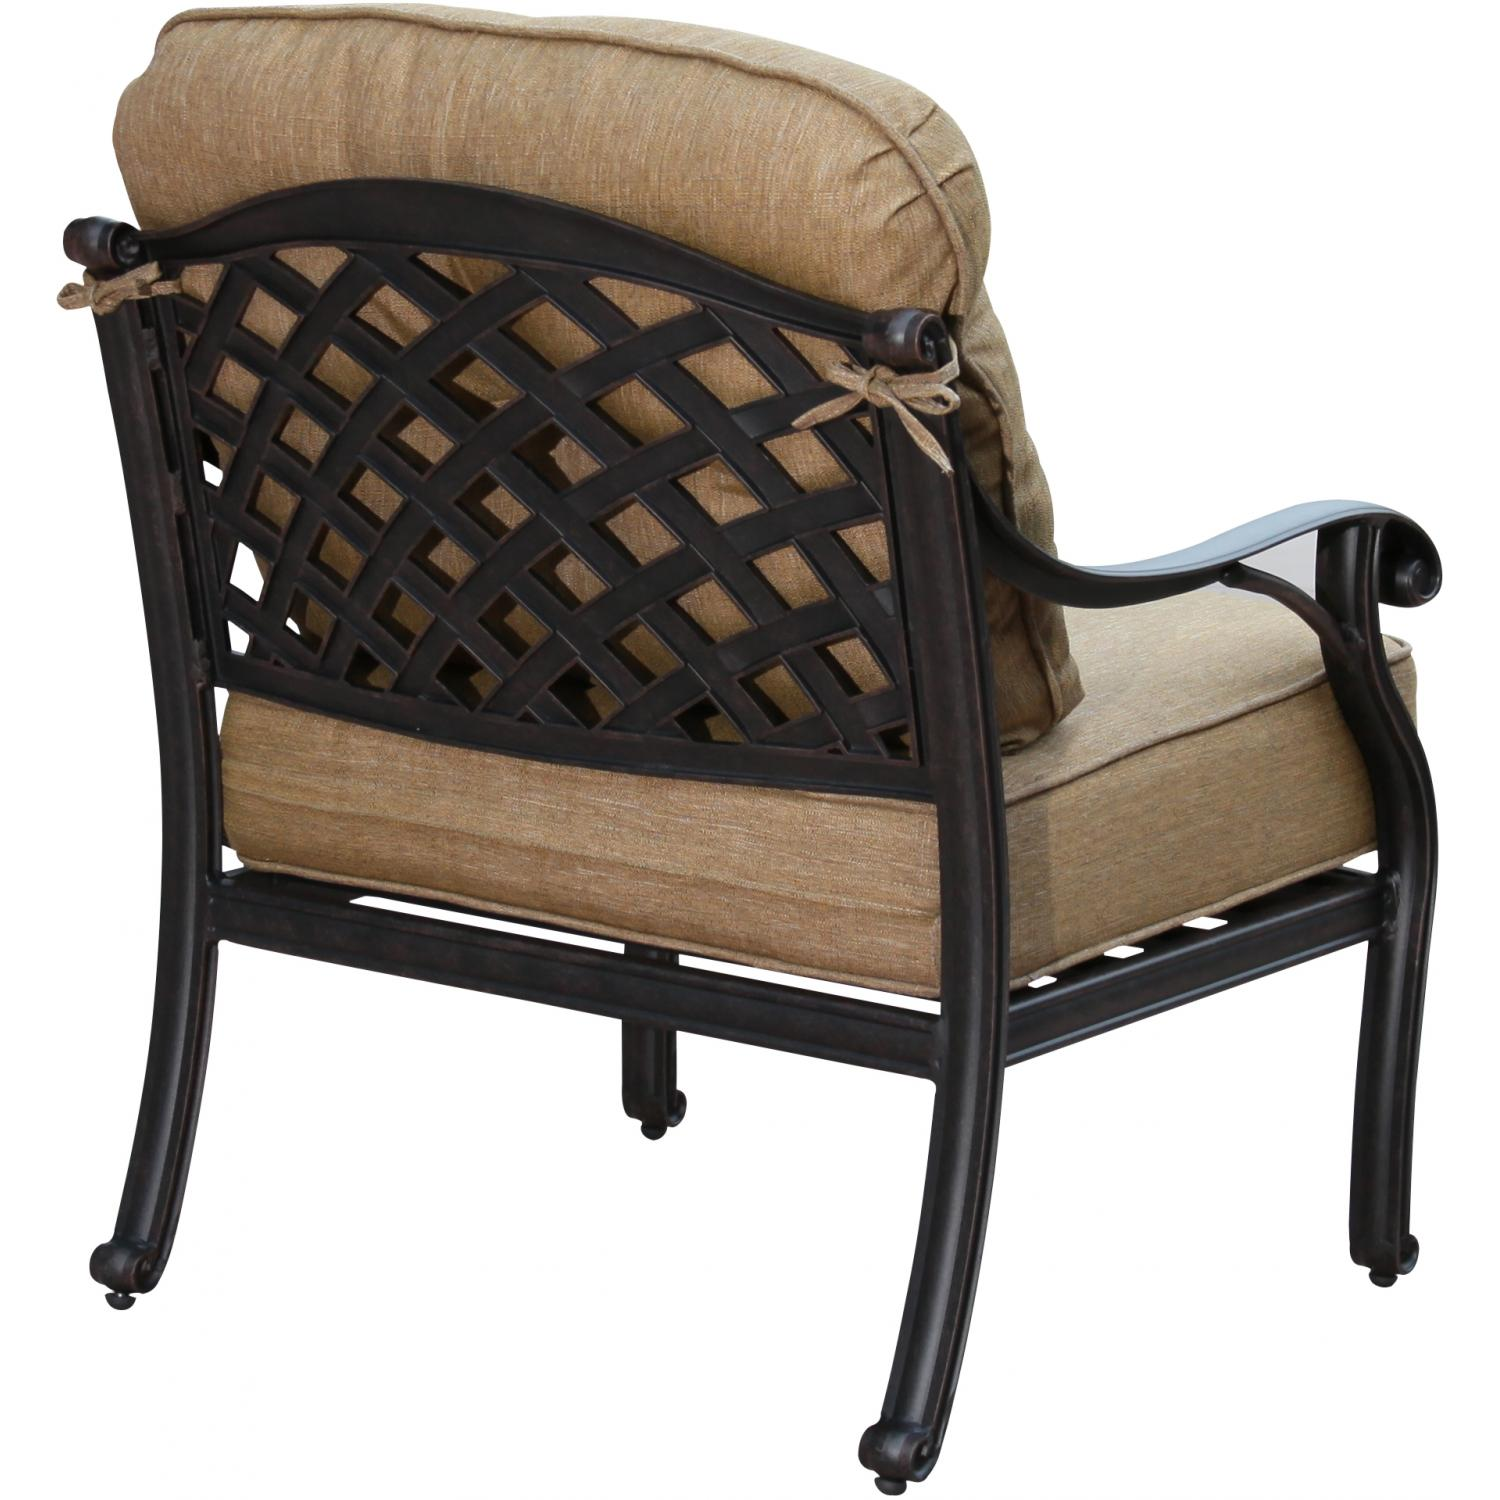 Darlee nassau cast aluminum deep seating patio lounge for Aluminum patio chairs